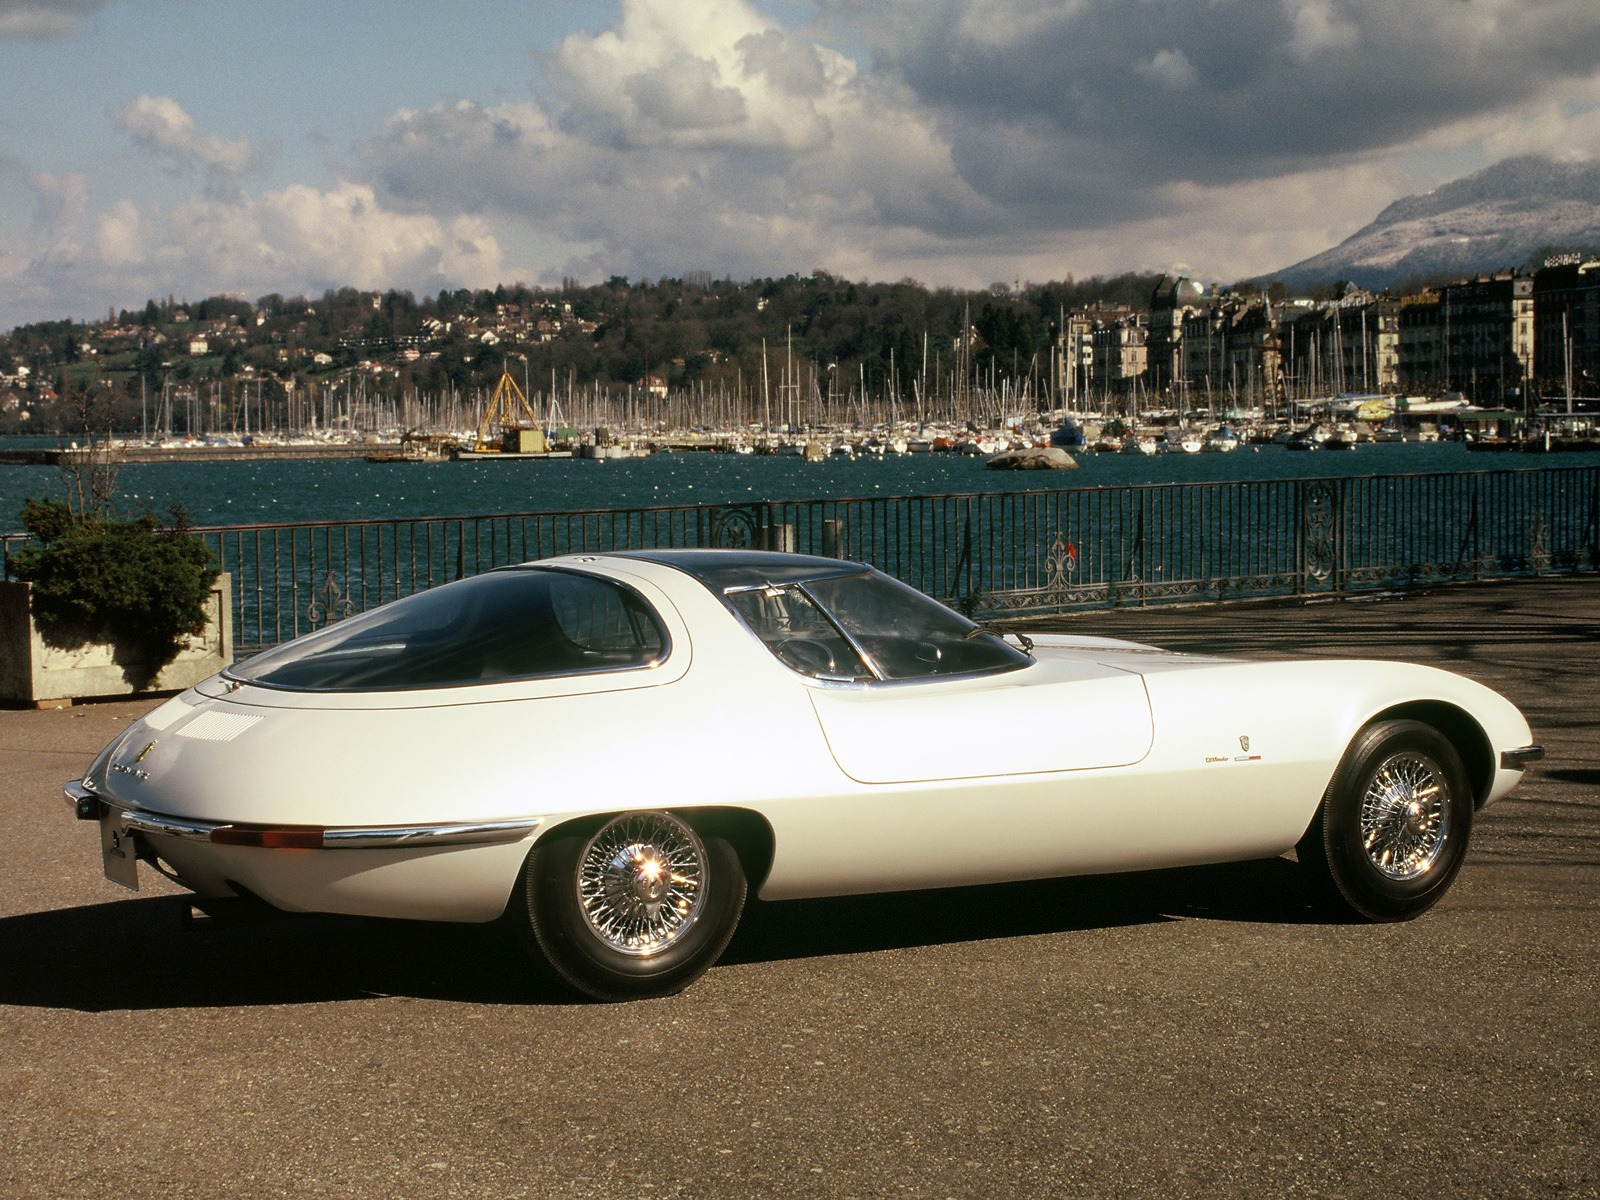 Chevrolet Corvair Testudo (1963) – Old Concept Cars